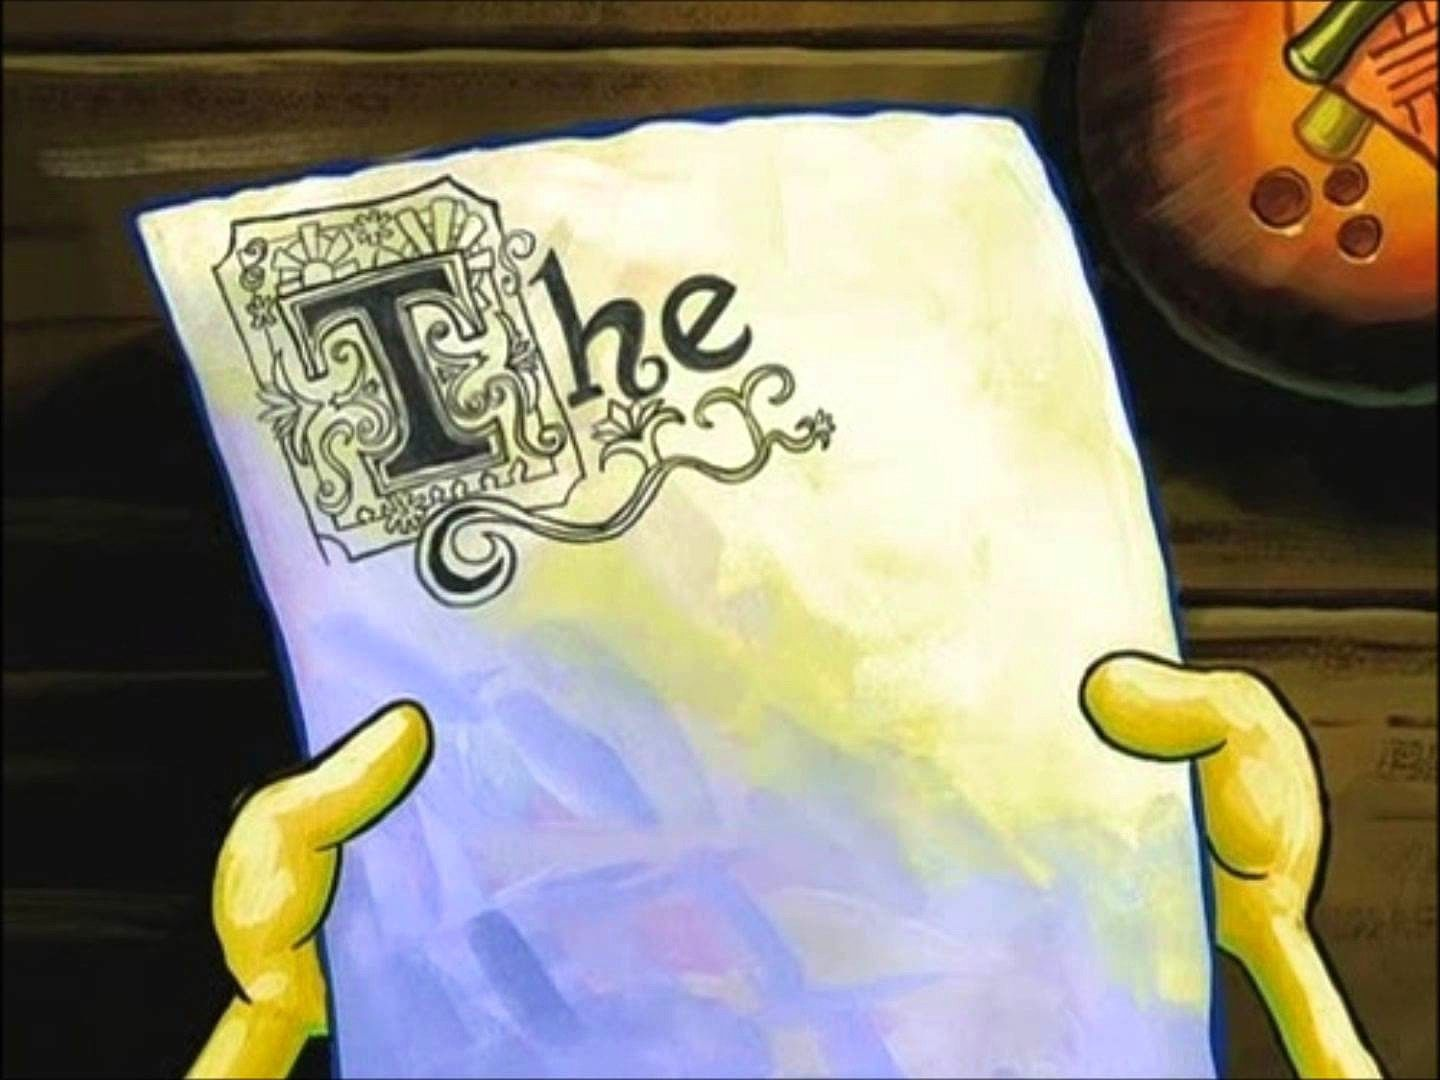 005 Spongebob Writing Essay Remarkable Meme Gif Full